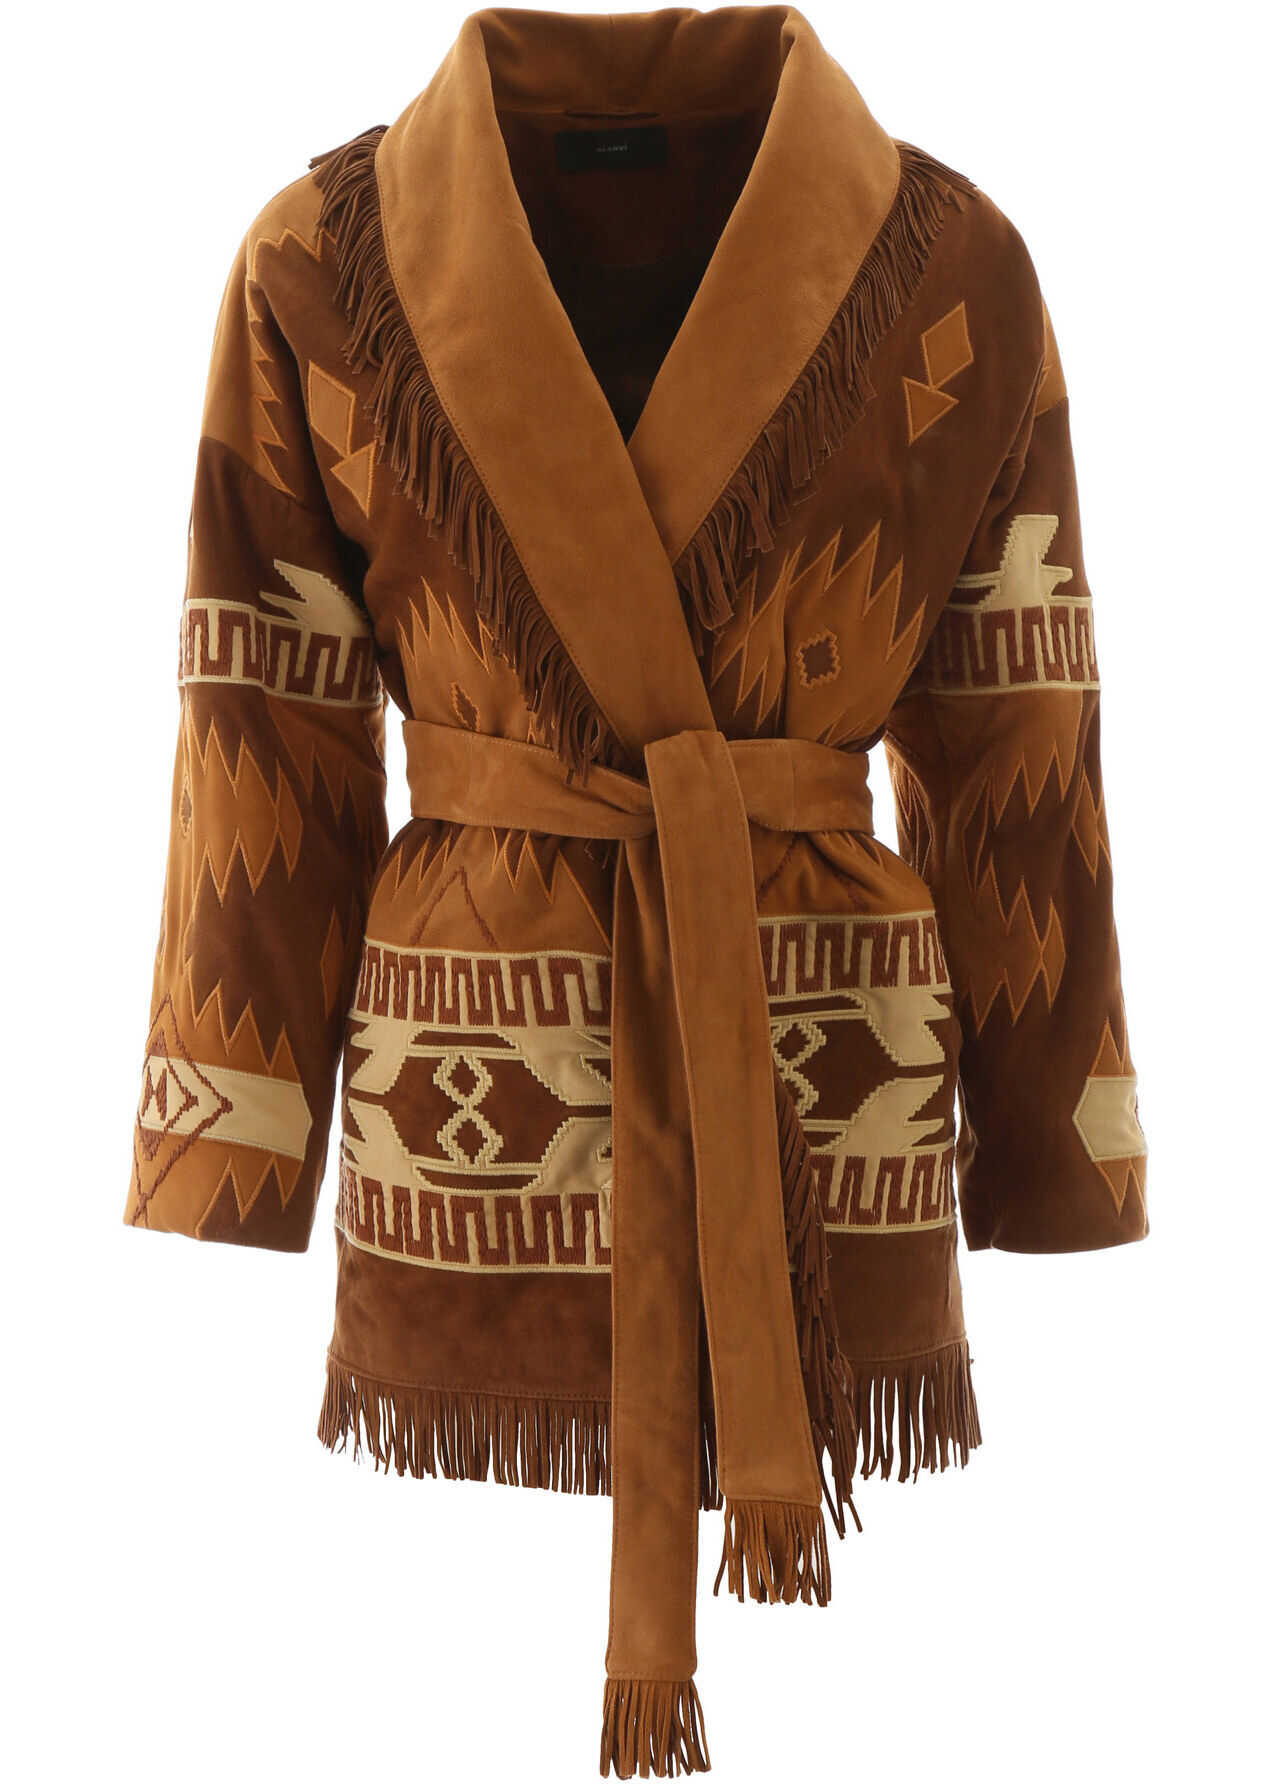 ALANUI Embroidered Suede Jacket BROWN MULTICOLOR